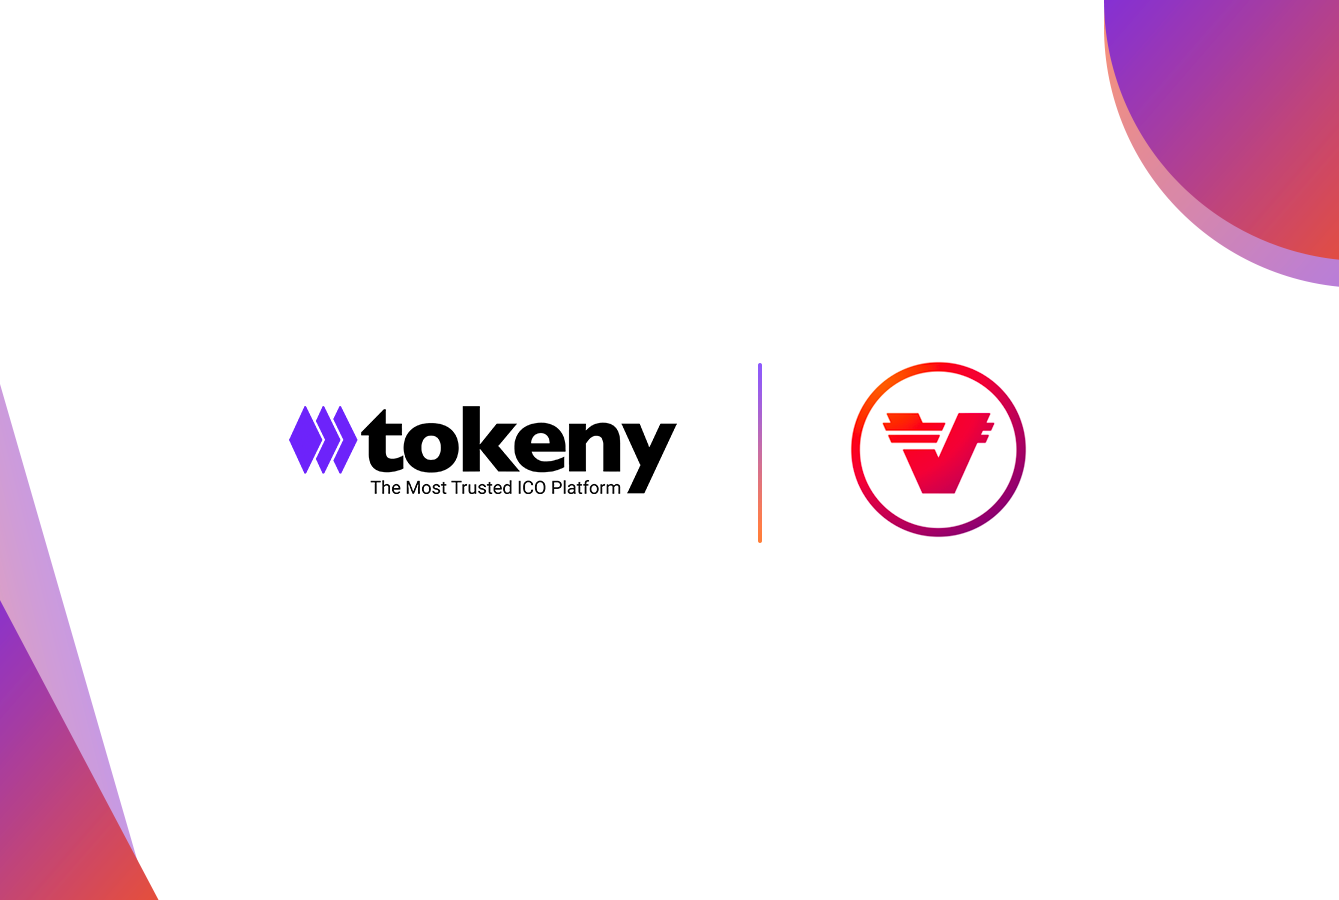 Tokeny Teams Up With Verasity for ICO